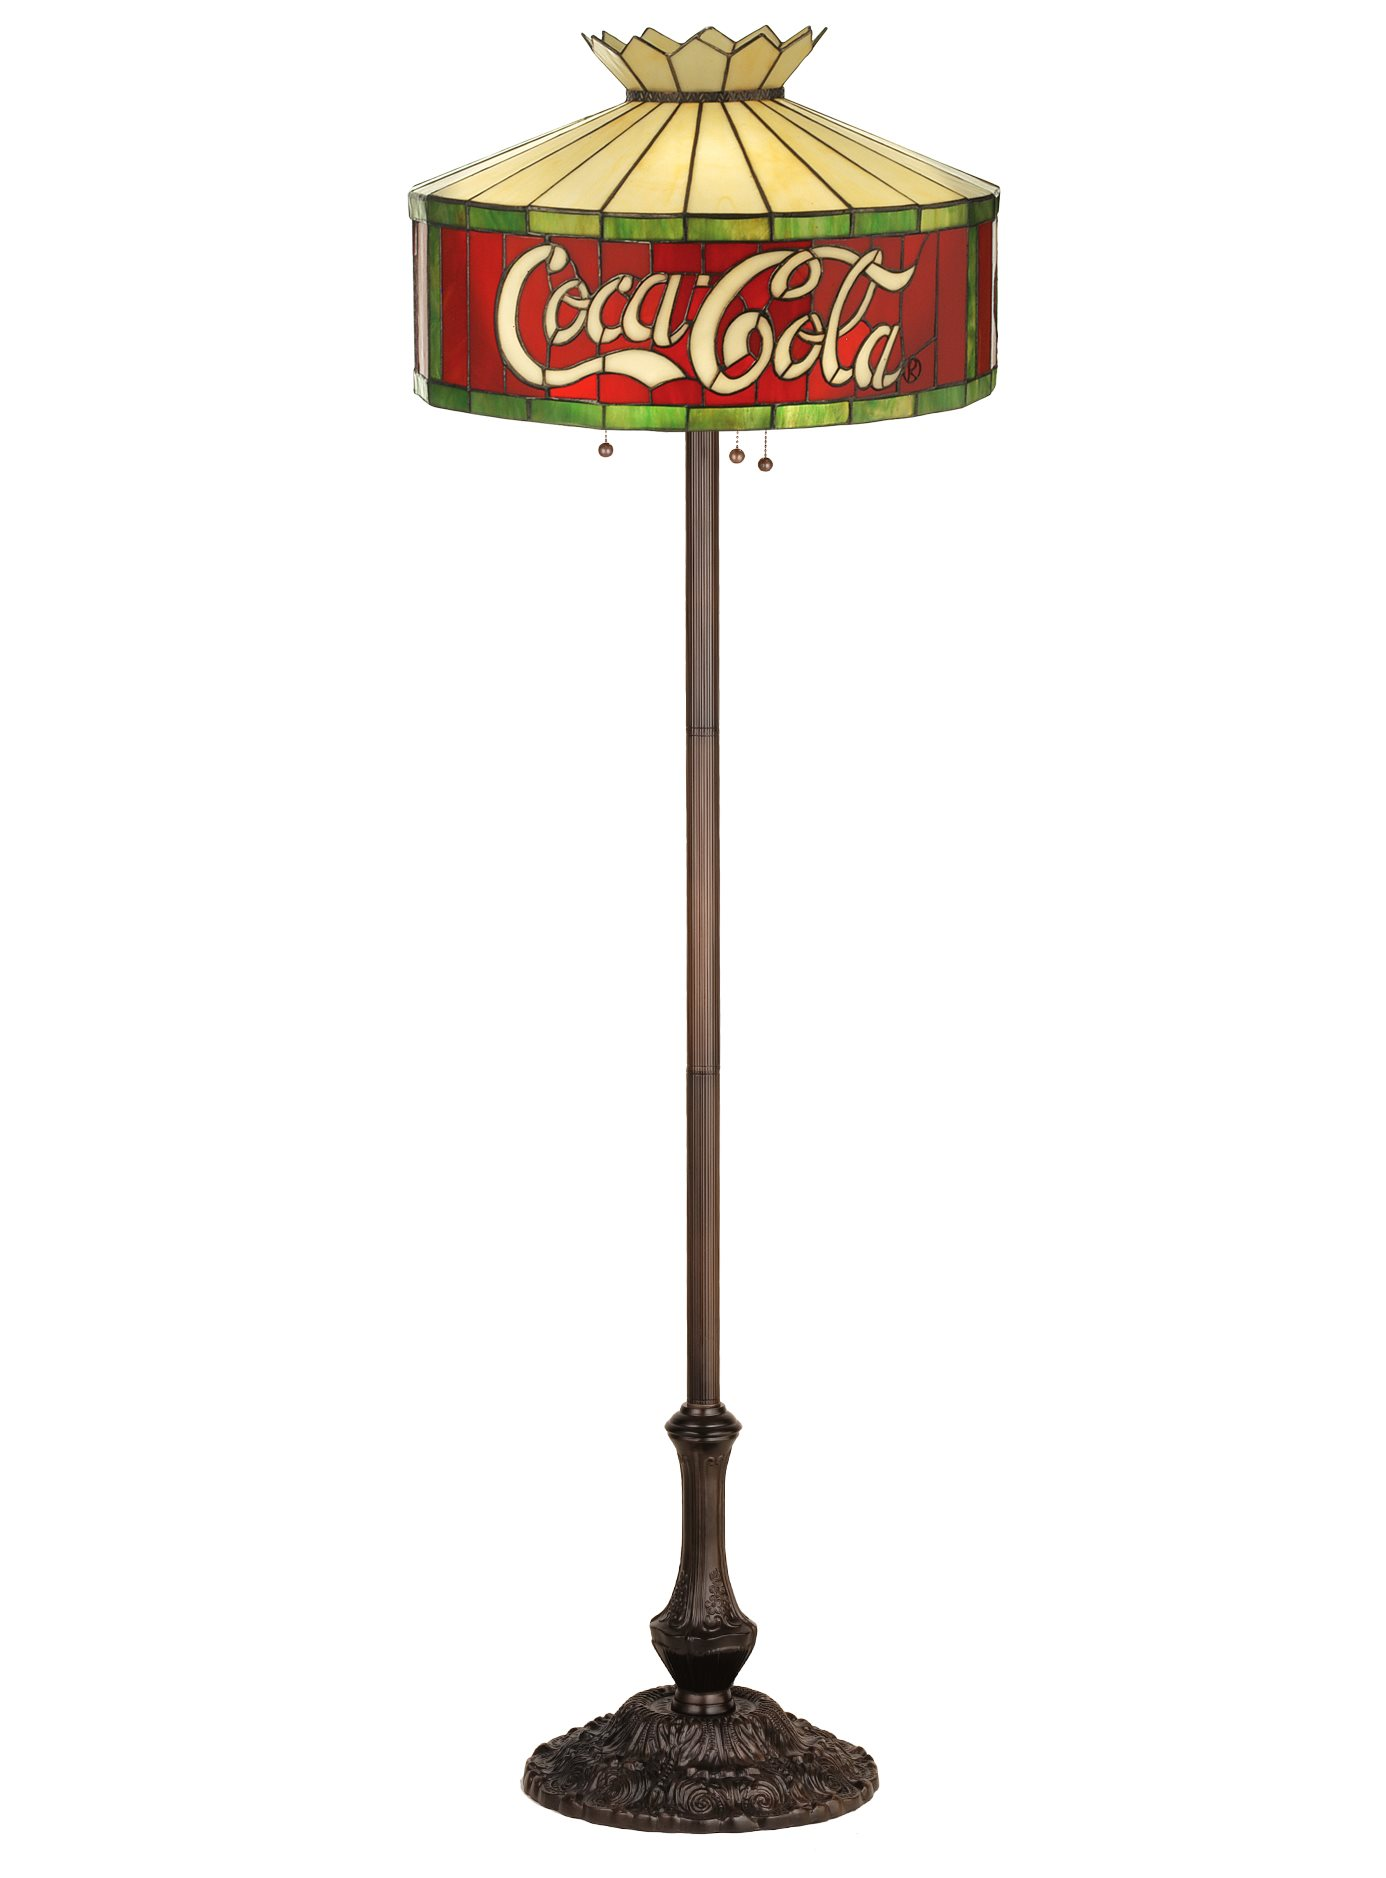 Meyda Tiffany 74068 Coca Cola Floor Lamp Md 74068